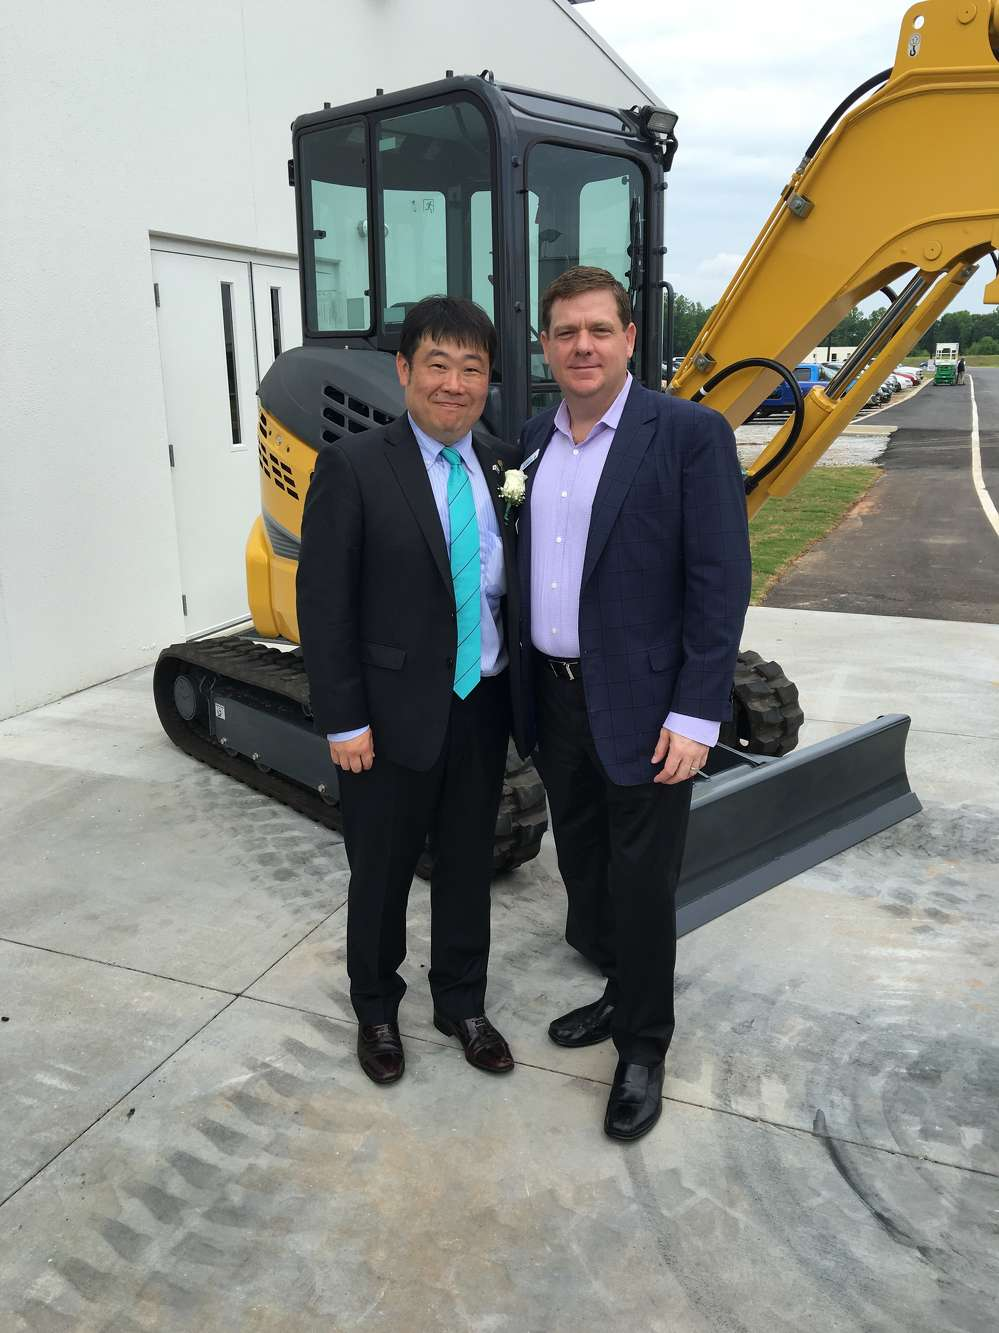 Pete Morita (L), president and CEO Kobelco Construction Machinery USA Inc., and Thomas Reynolds, president Highway Equipment Company stand in front of the Kobelco SK35SR excavator.